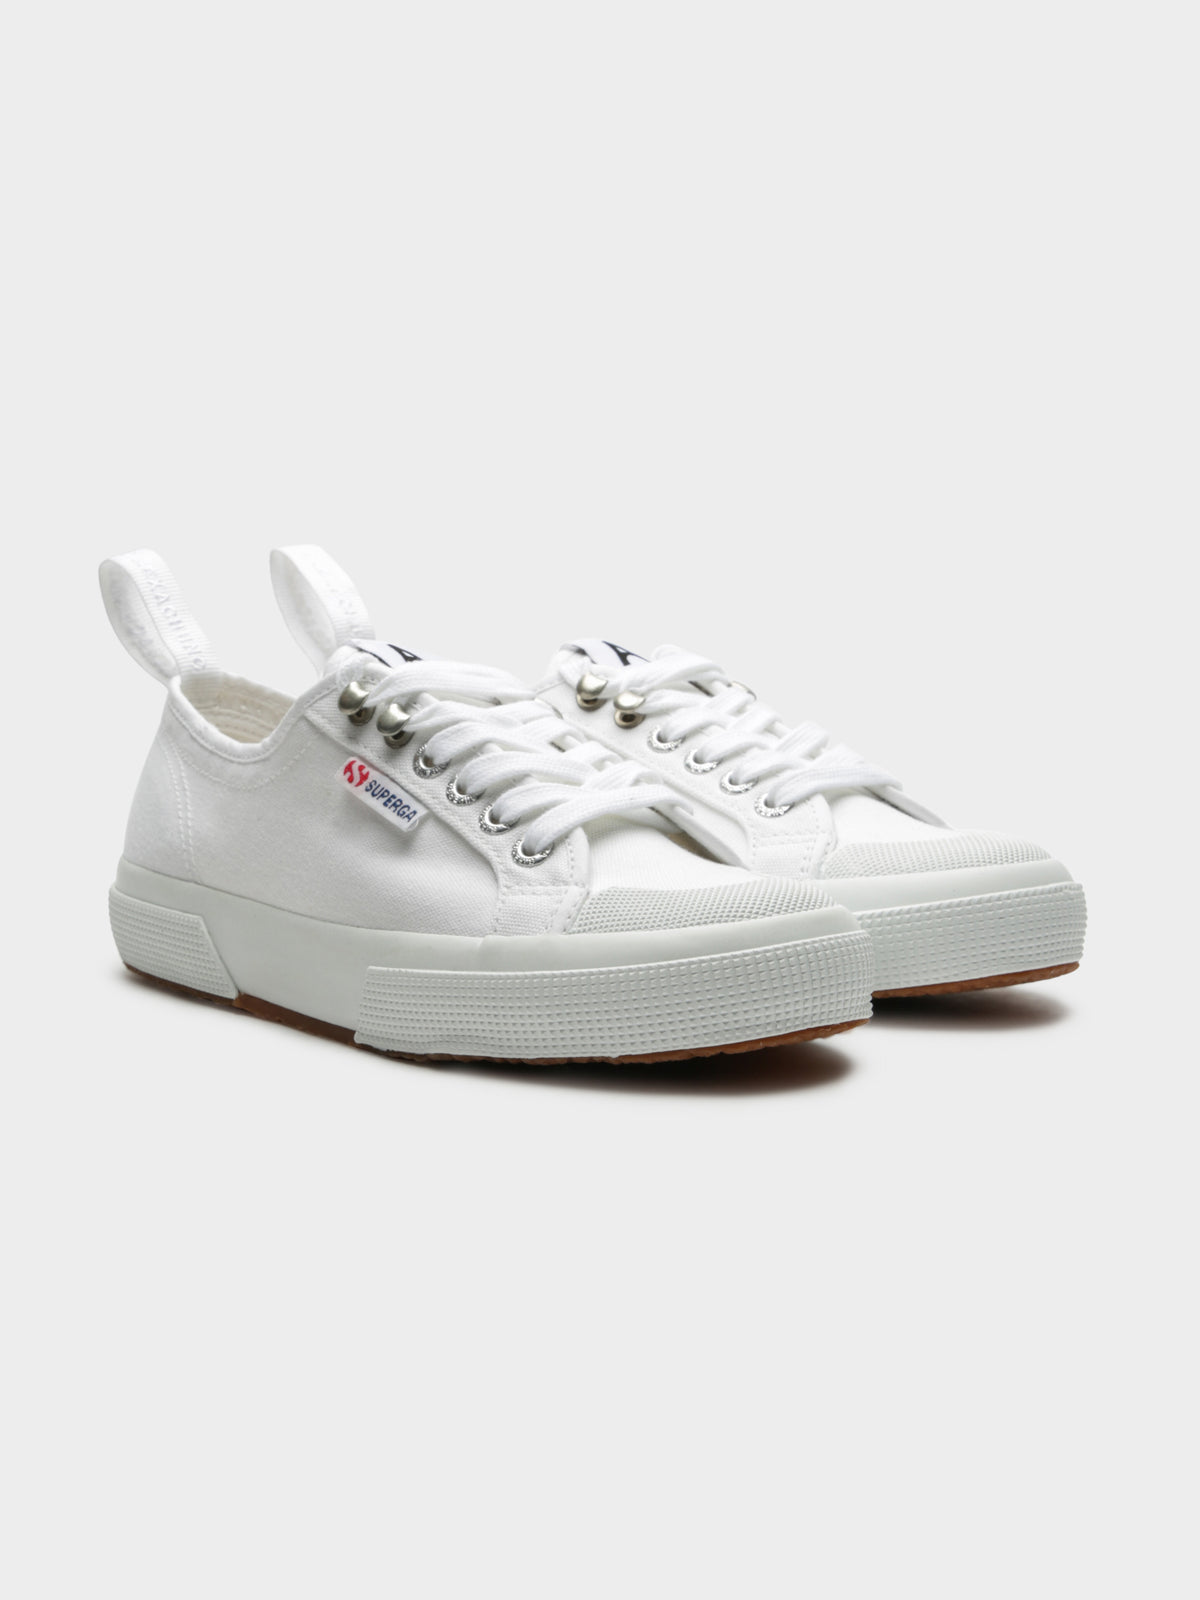 Alexa Chung Cot Hook Lace-Up Sneakers in White